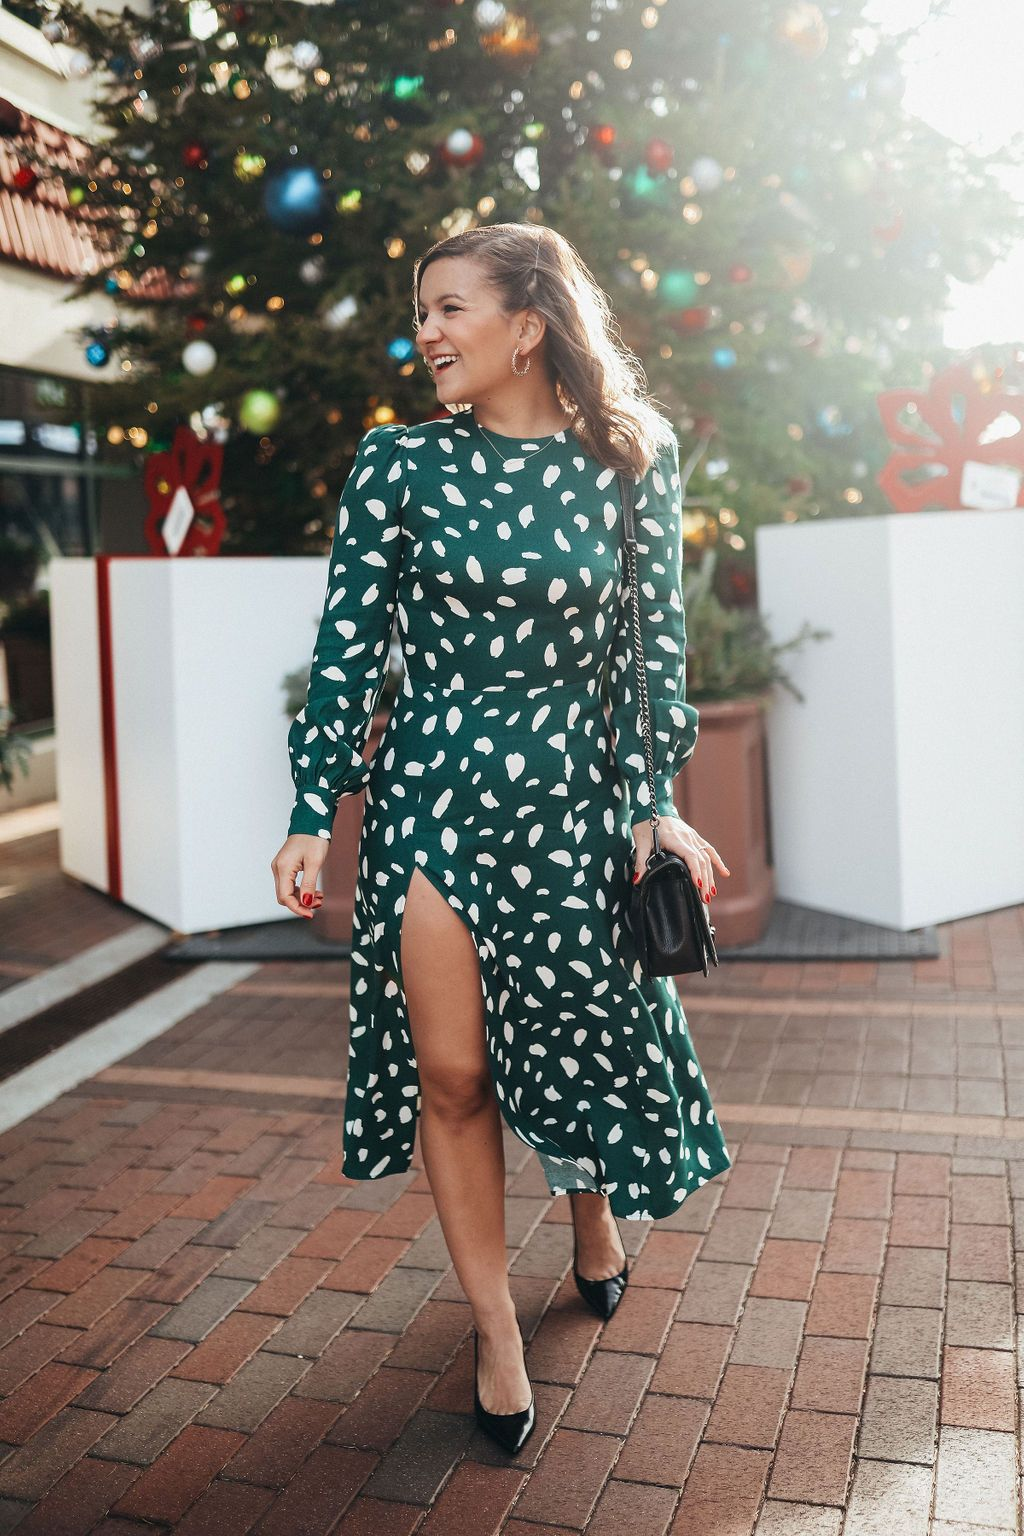 New Year's Eve Outfit Ideas For Any Celebration in 2020